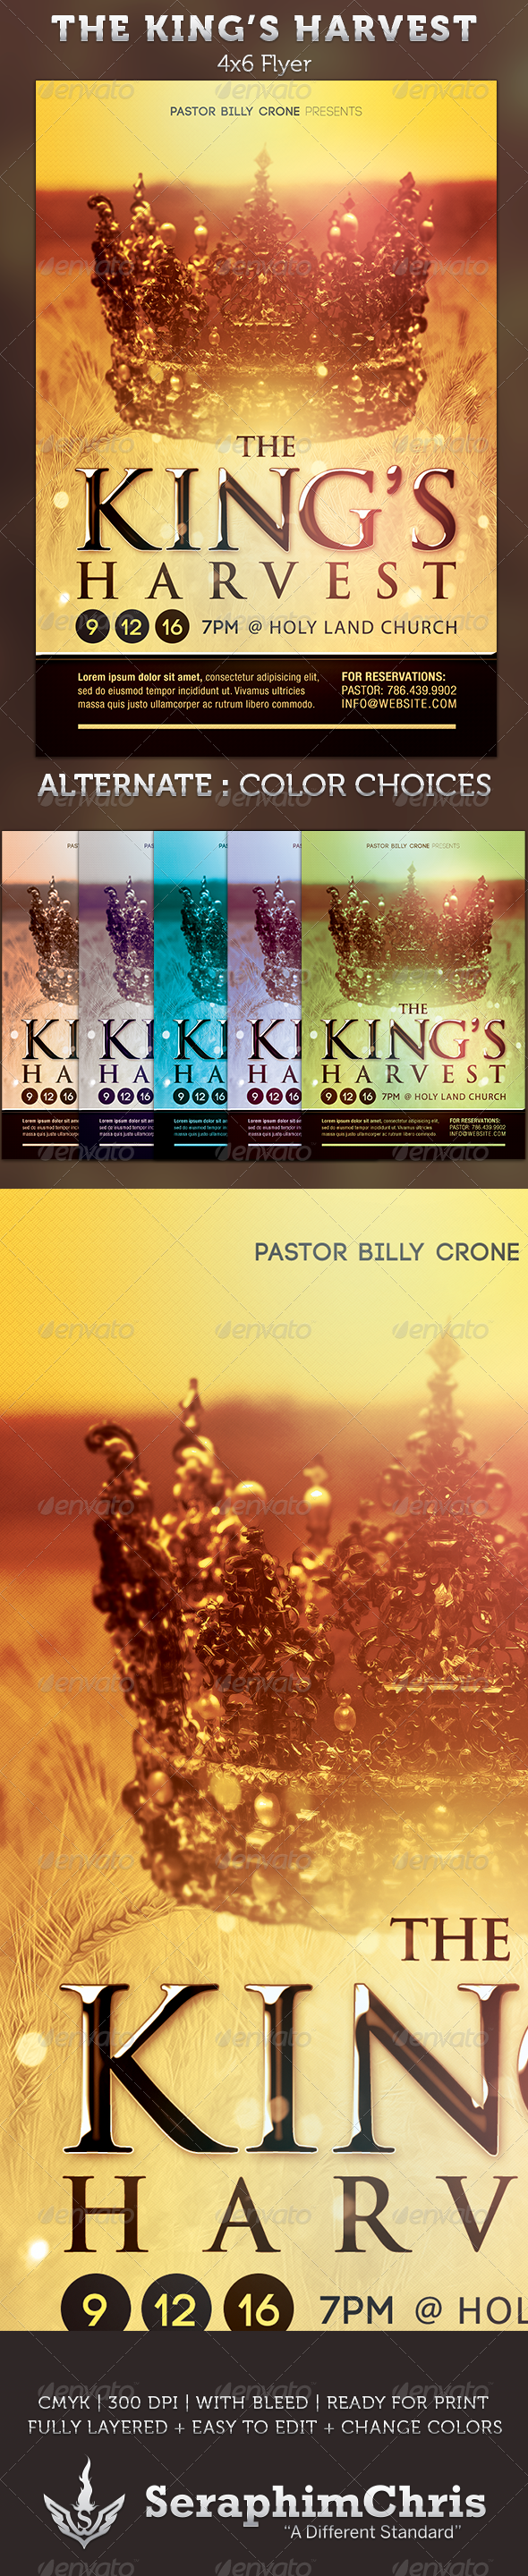 The King's Harvest: Church Flyer Template  - Church Flyers